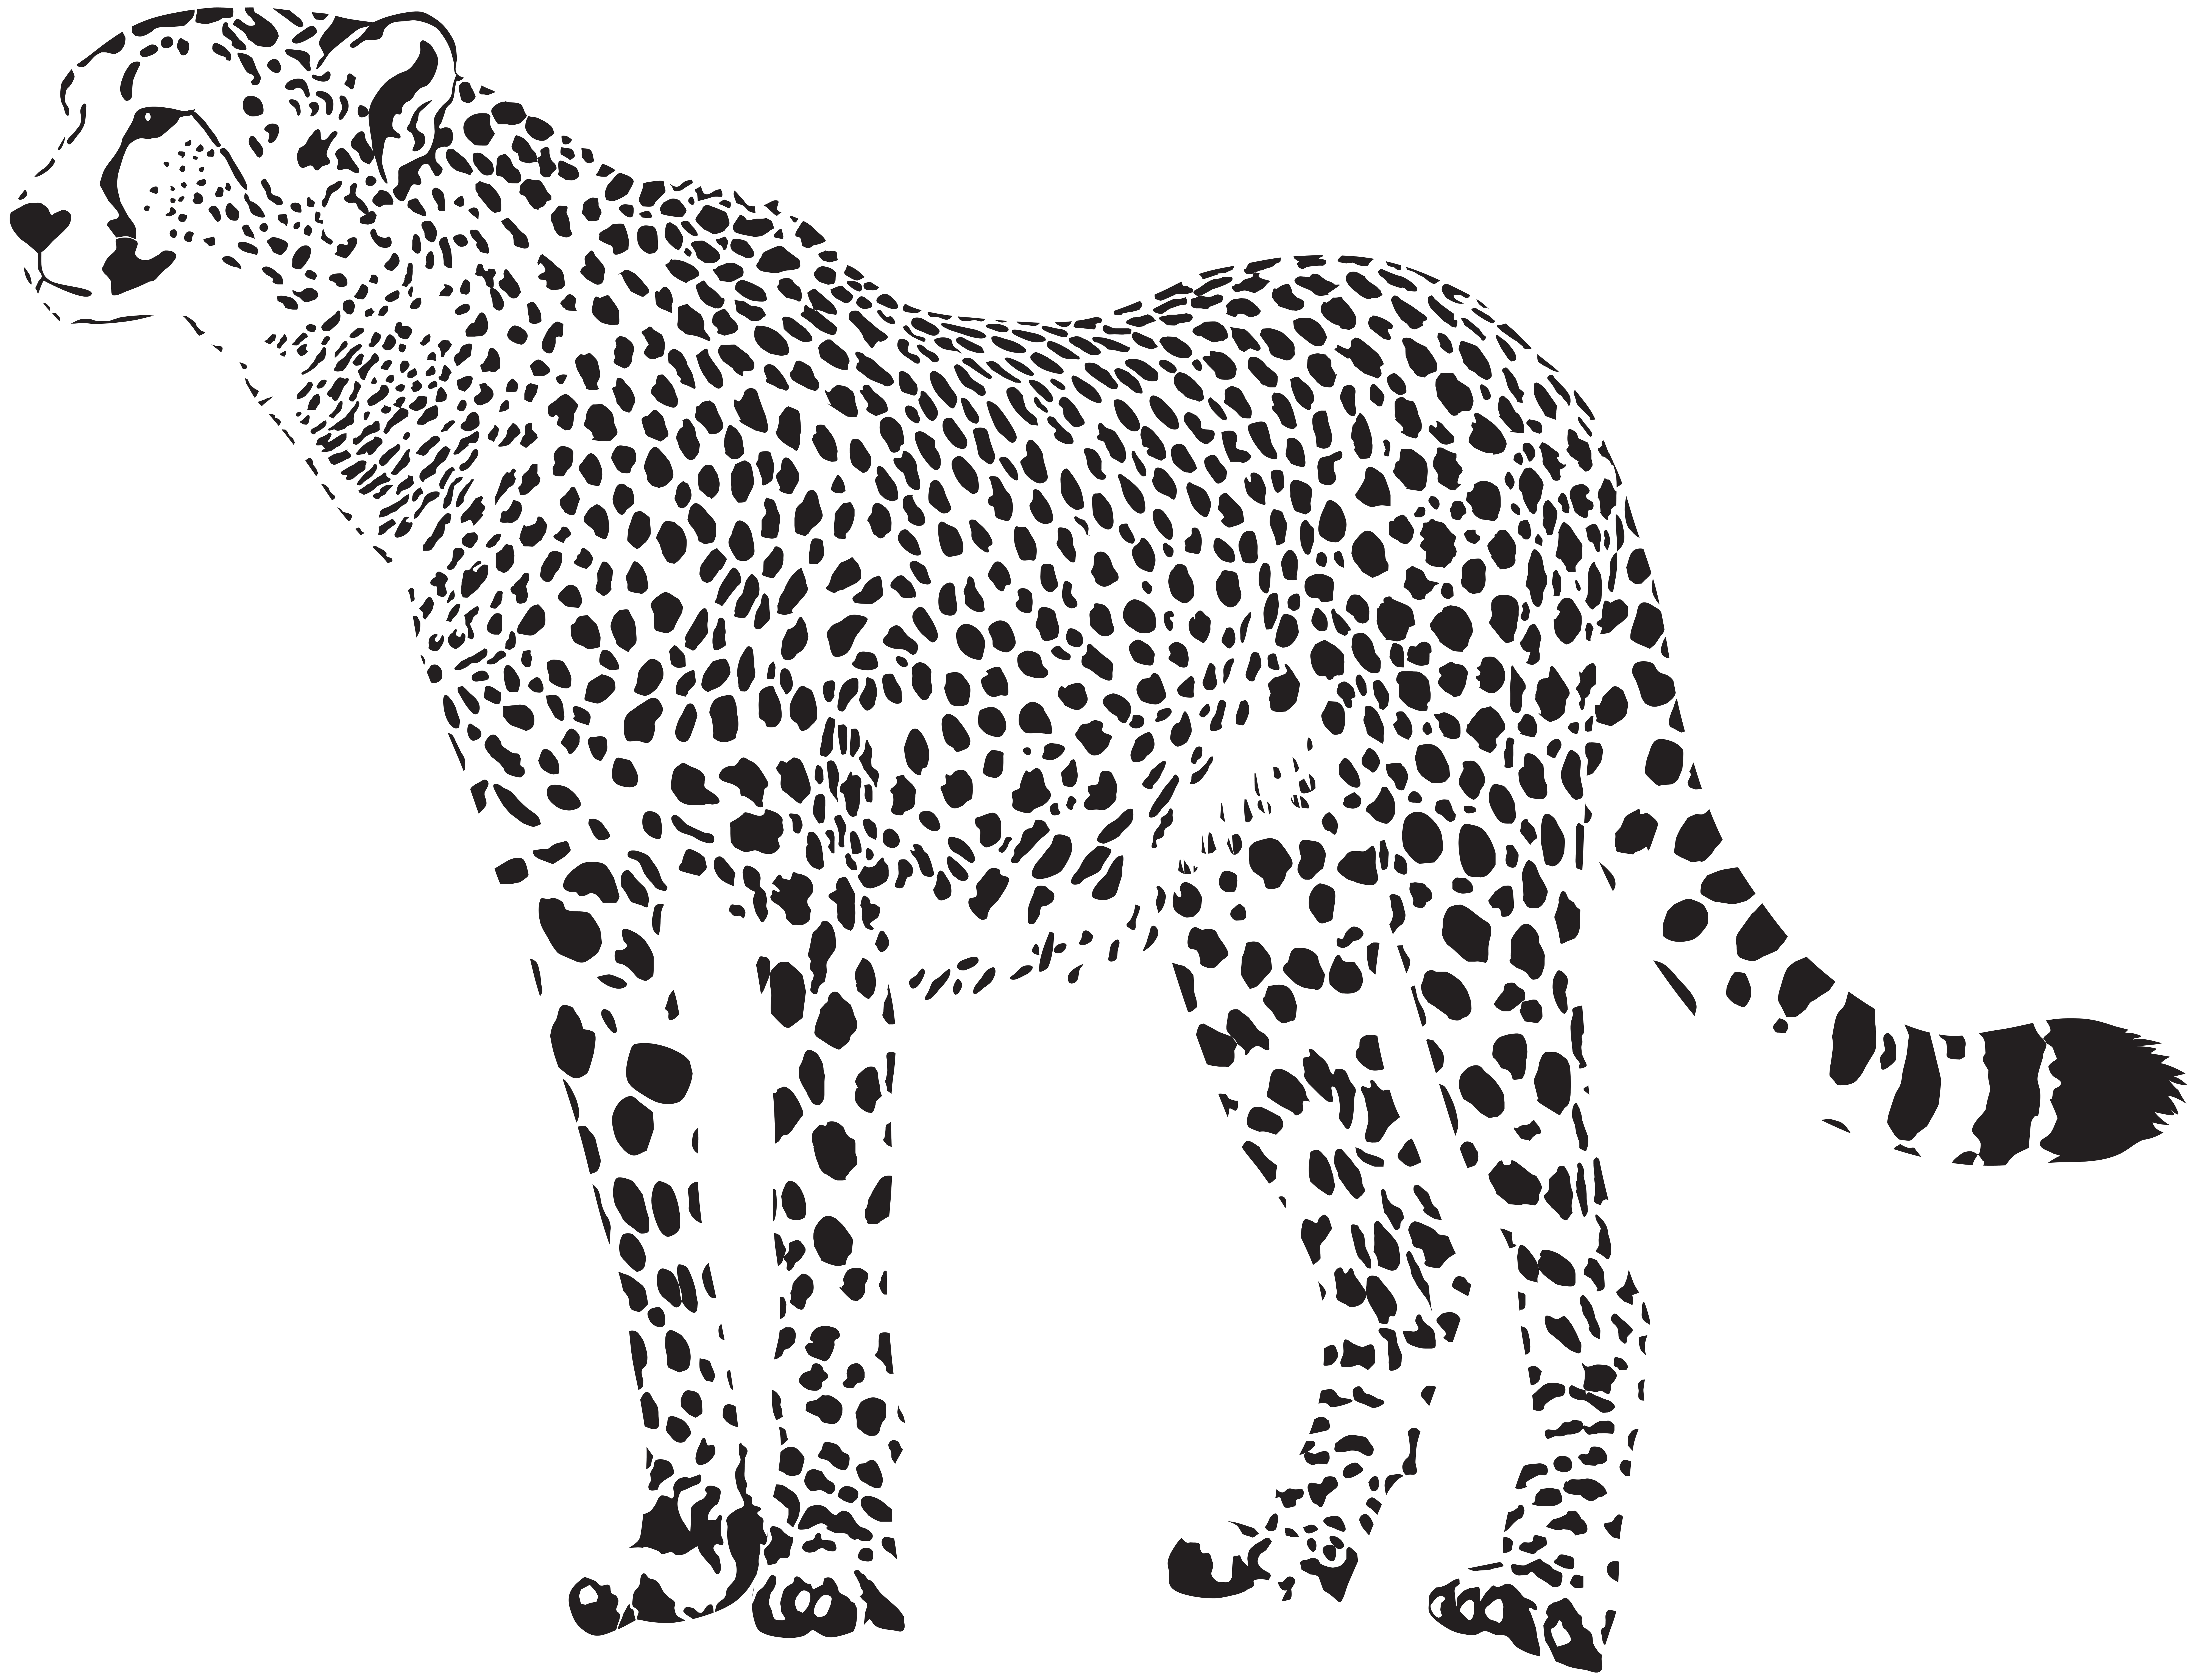 Shaow clipart cheetah Free image silhouette Clipart Pictures